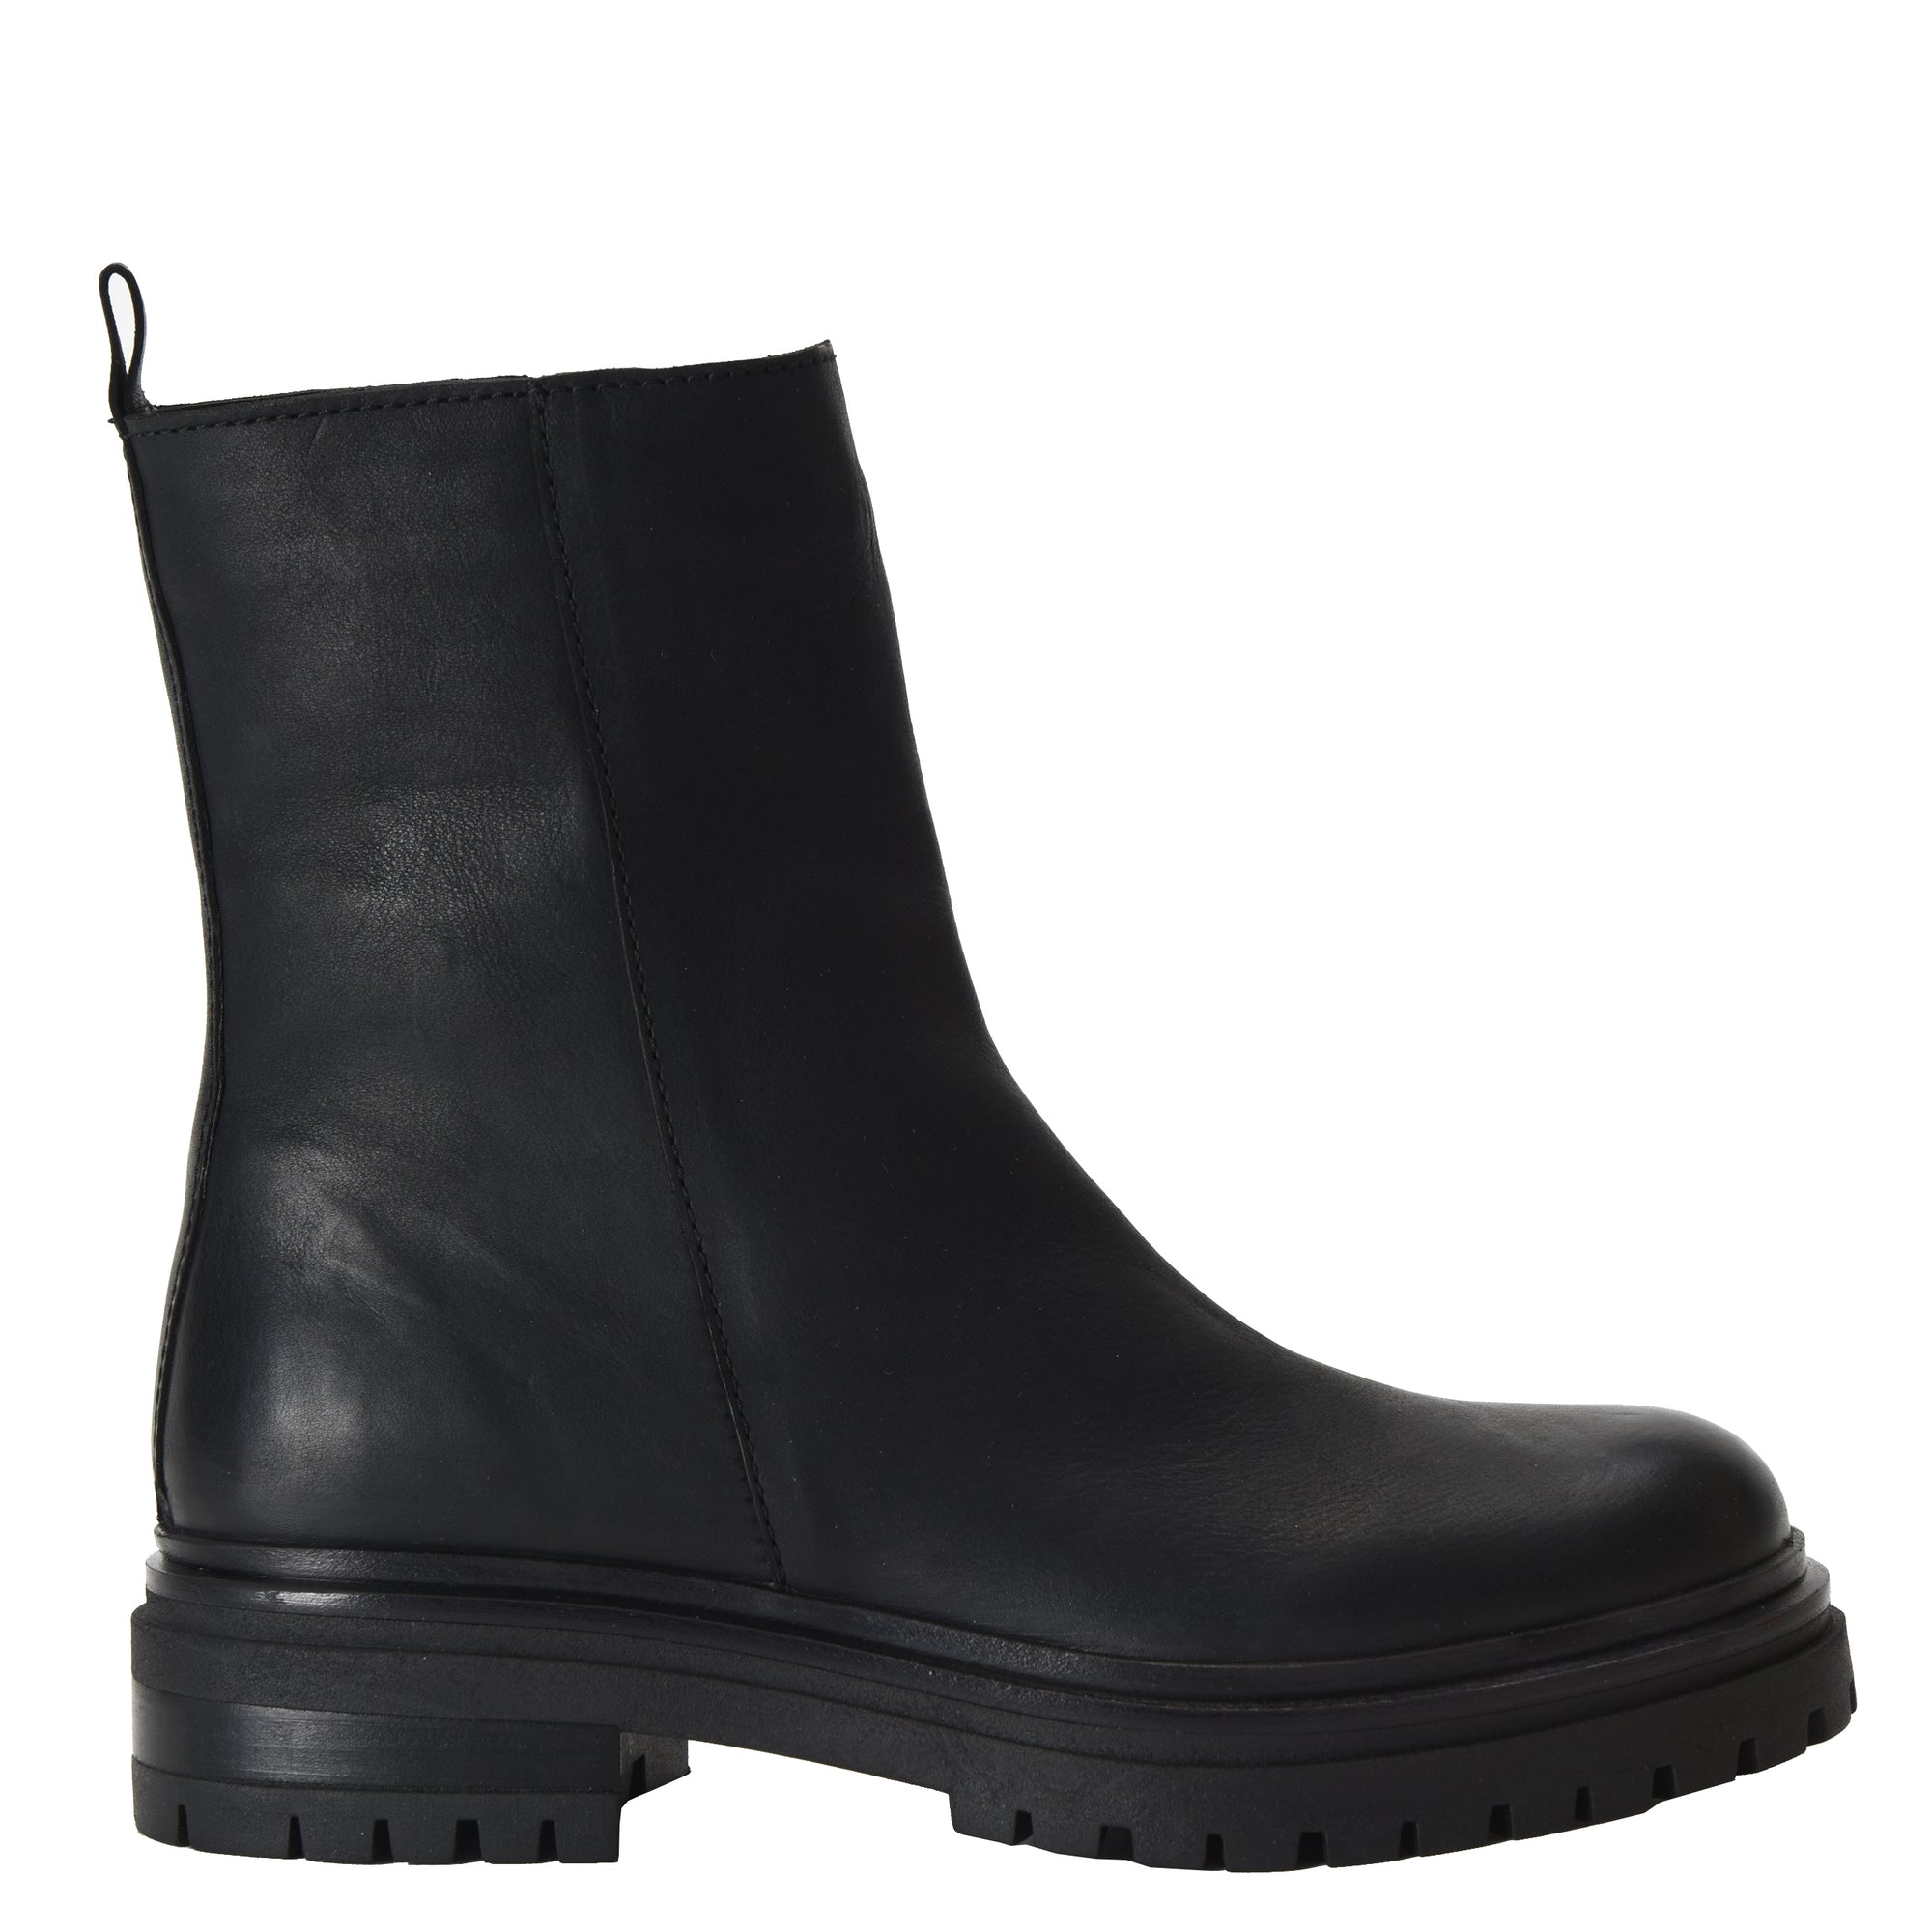 Canopy Lug Sole Boots